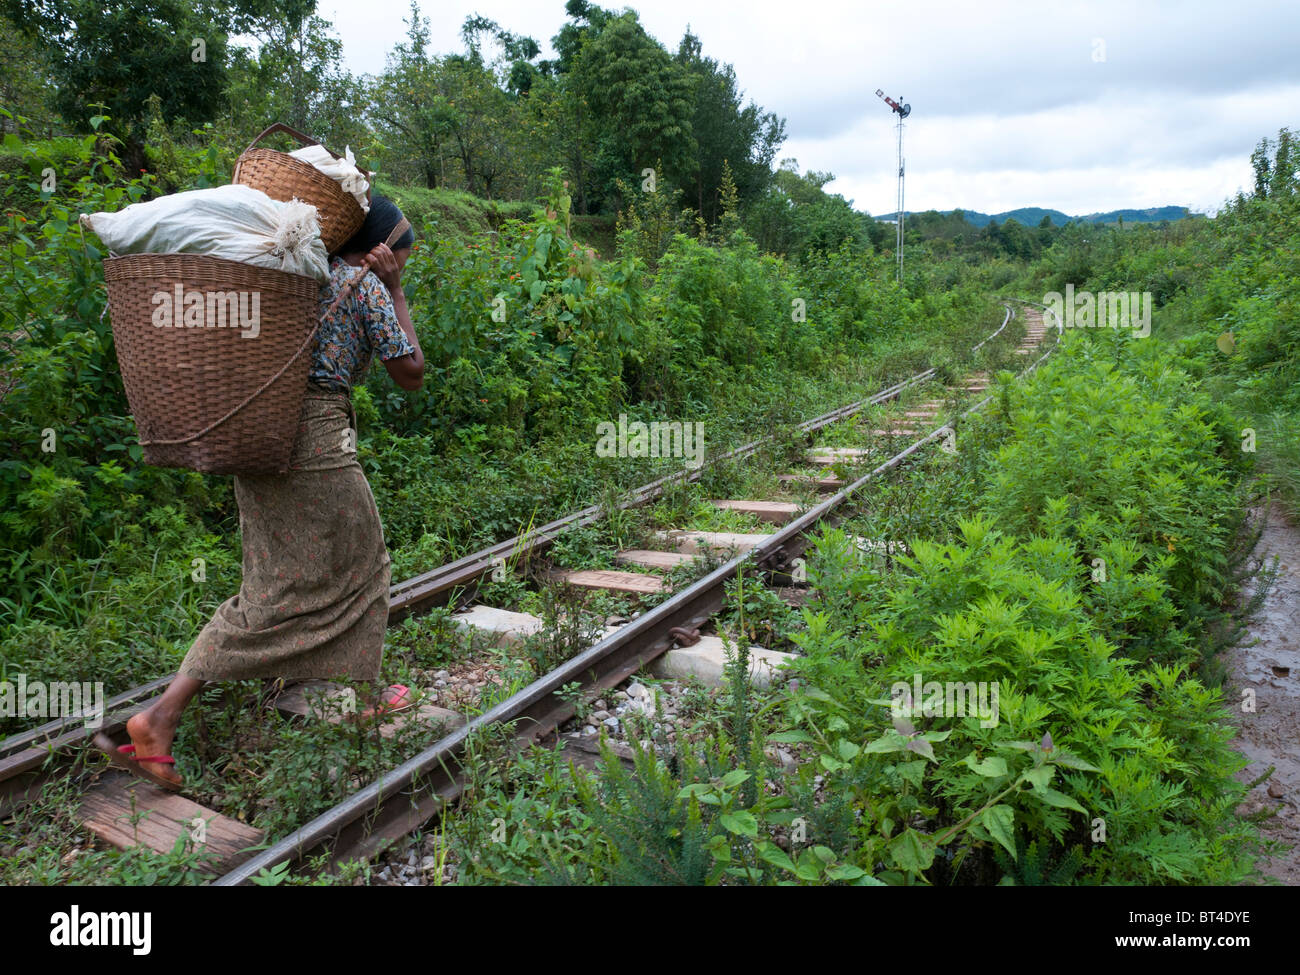 woman carrying heavy load in back basket on train track ...